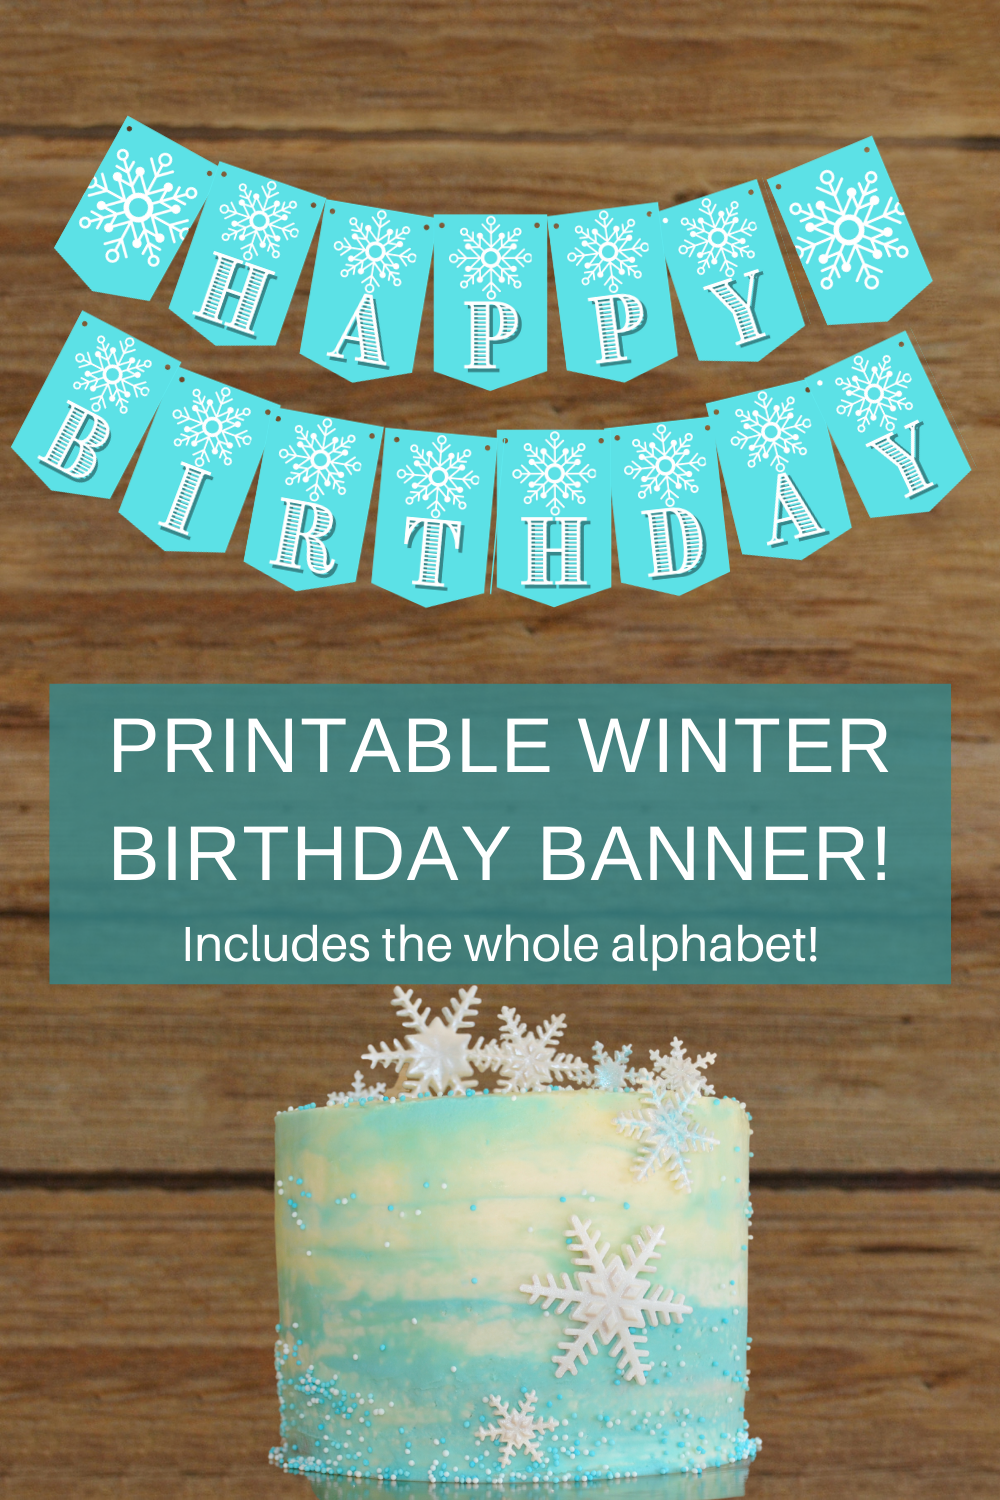 blue and white snowflake banner for a winter first birthday party